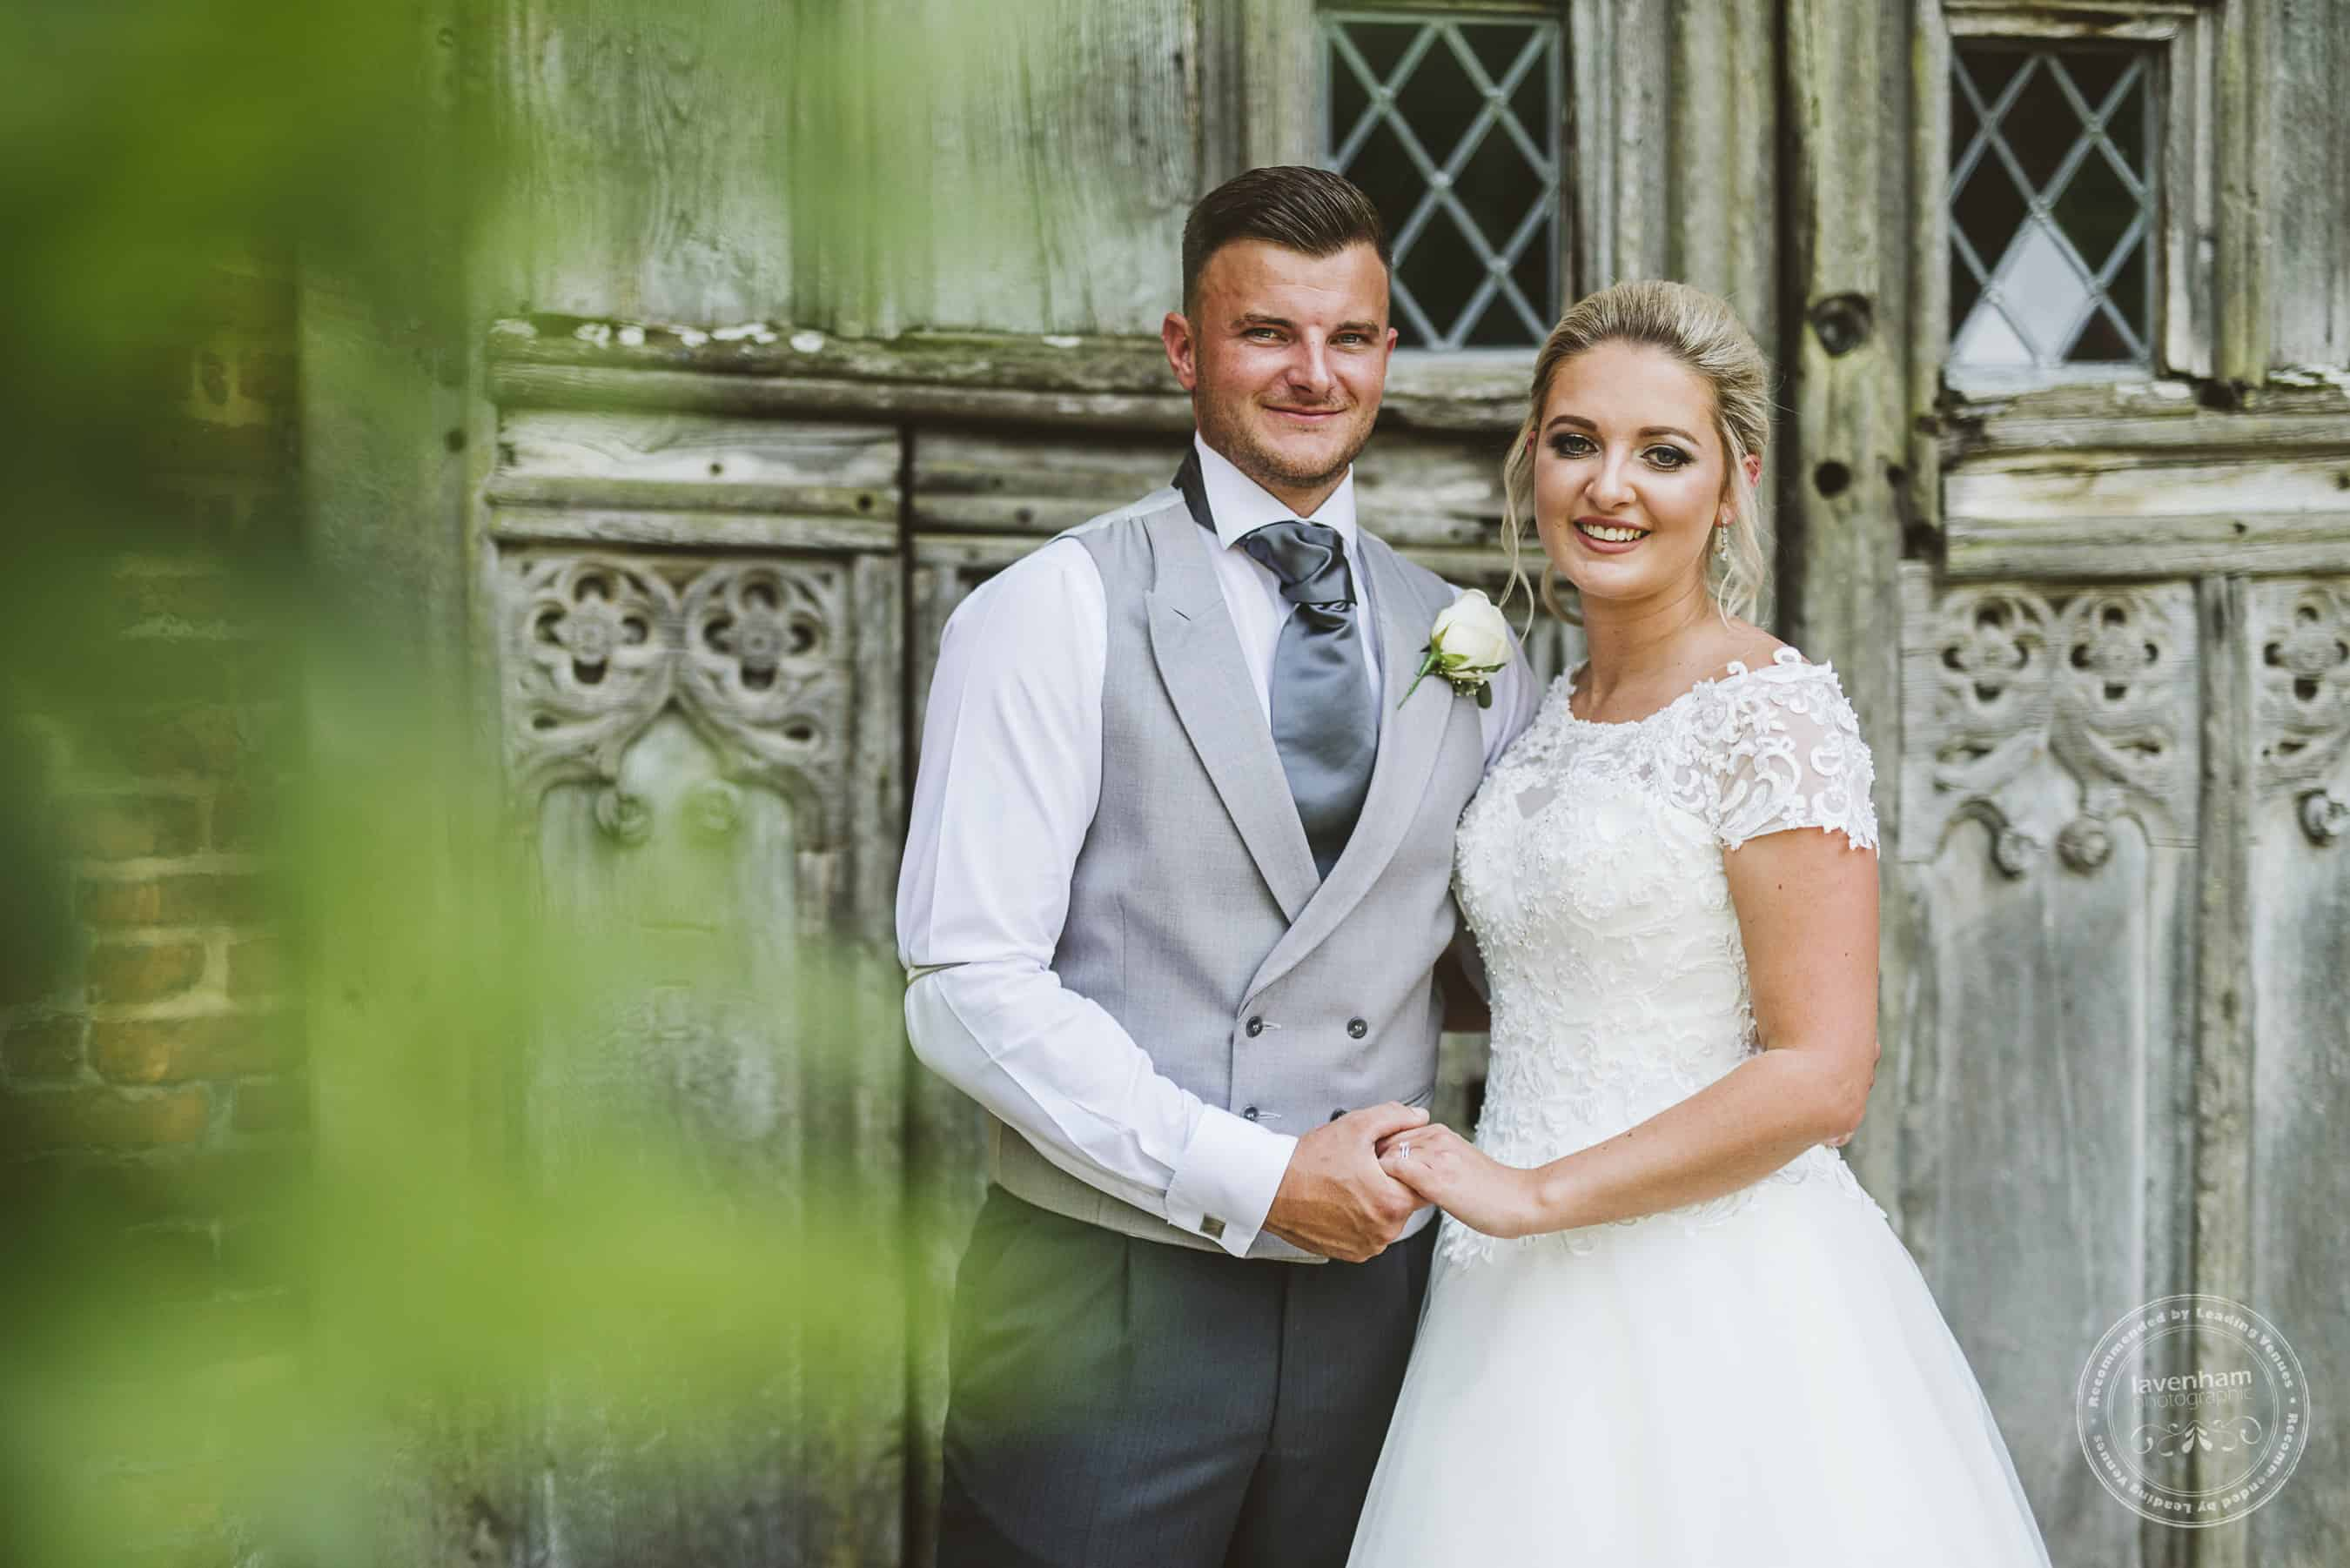 030618 Leez Priory Wedding Photography Lavenham Photographic 061